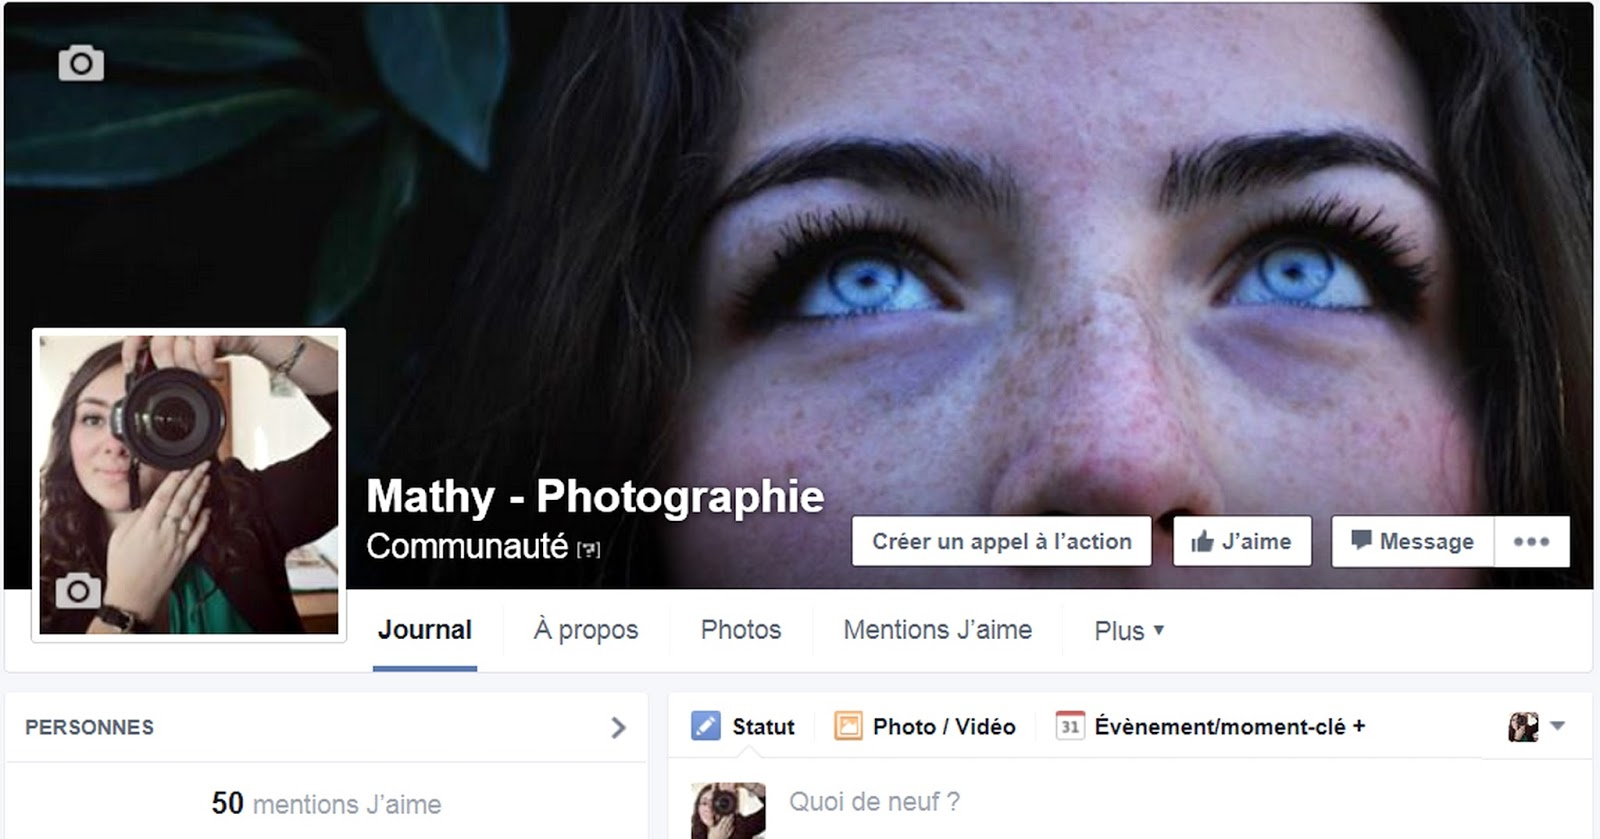 http://www.facebook.com/Mathy.Photographie/